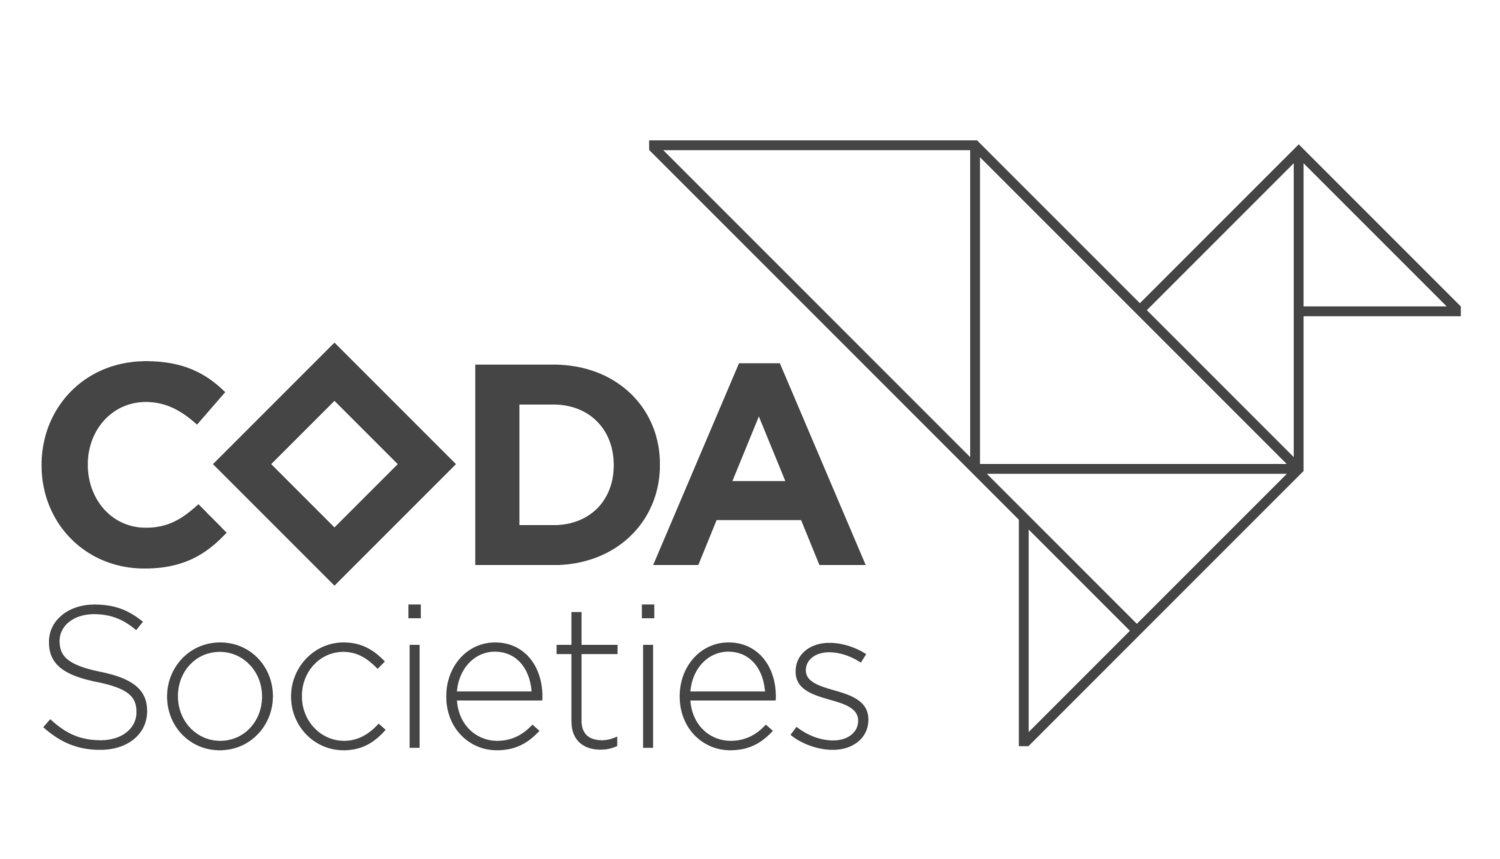 Coda Societies